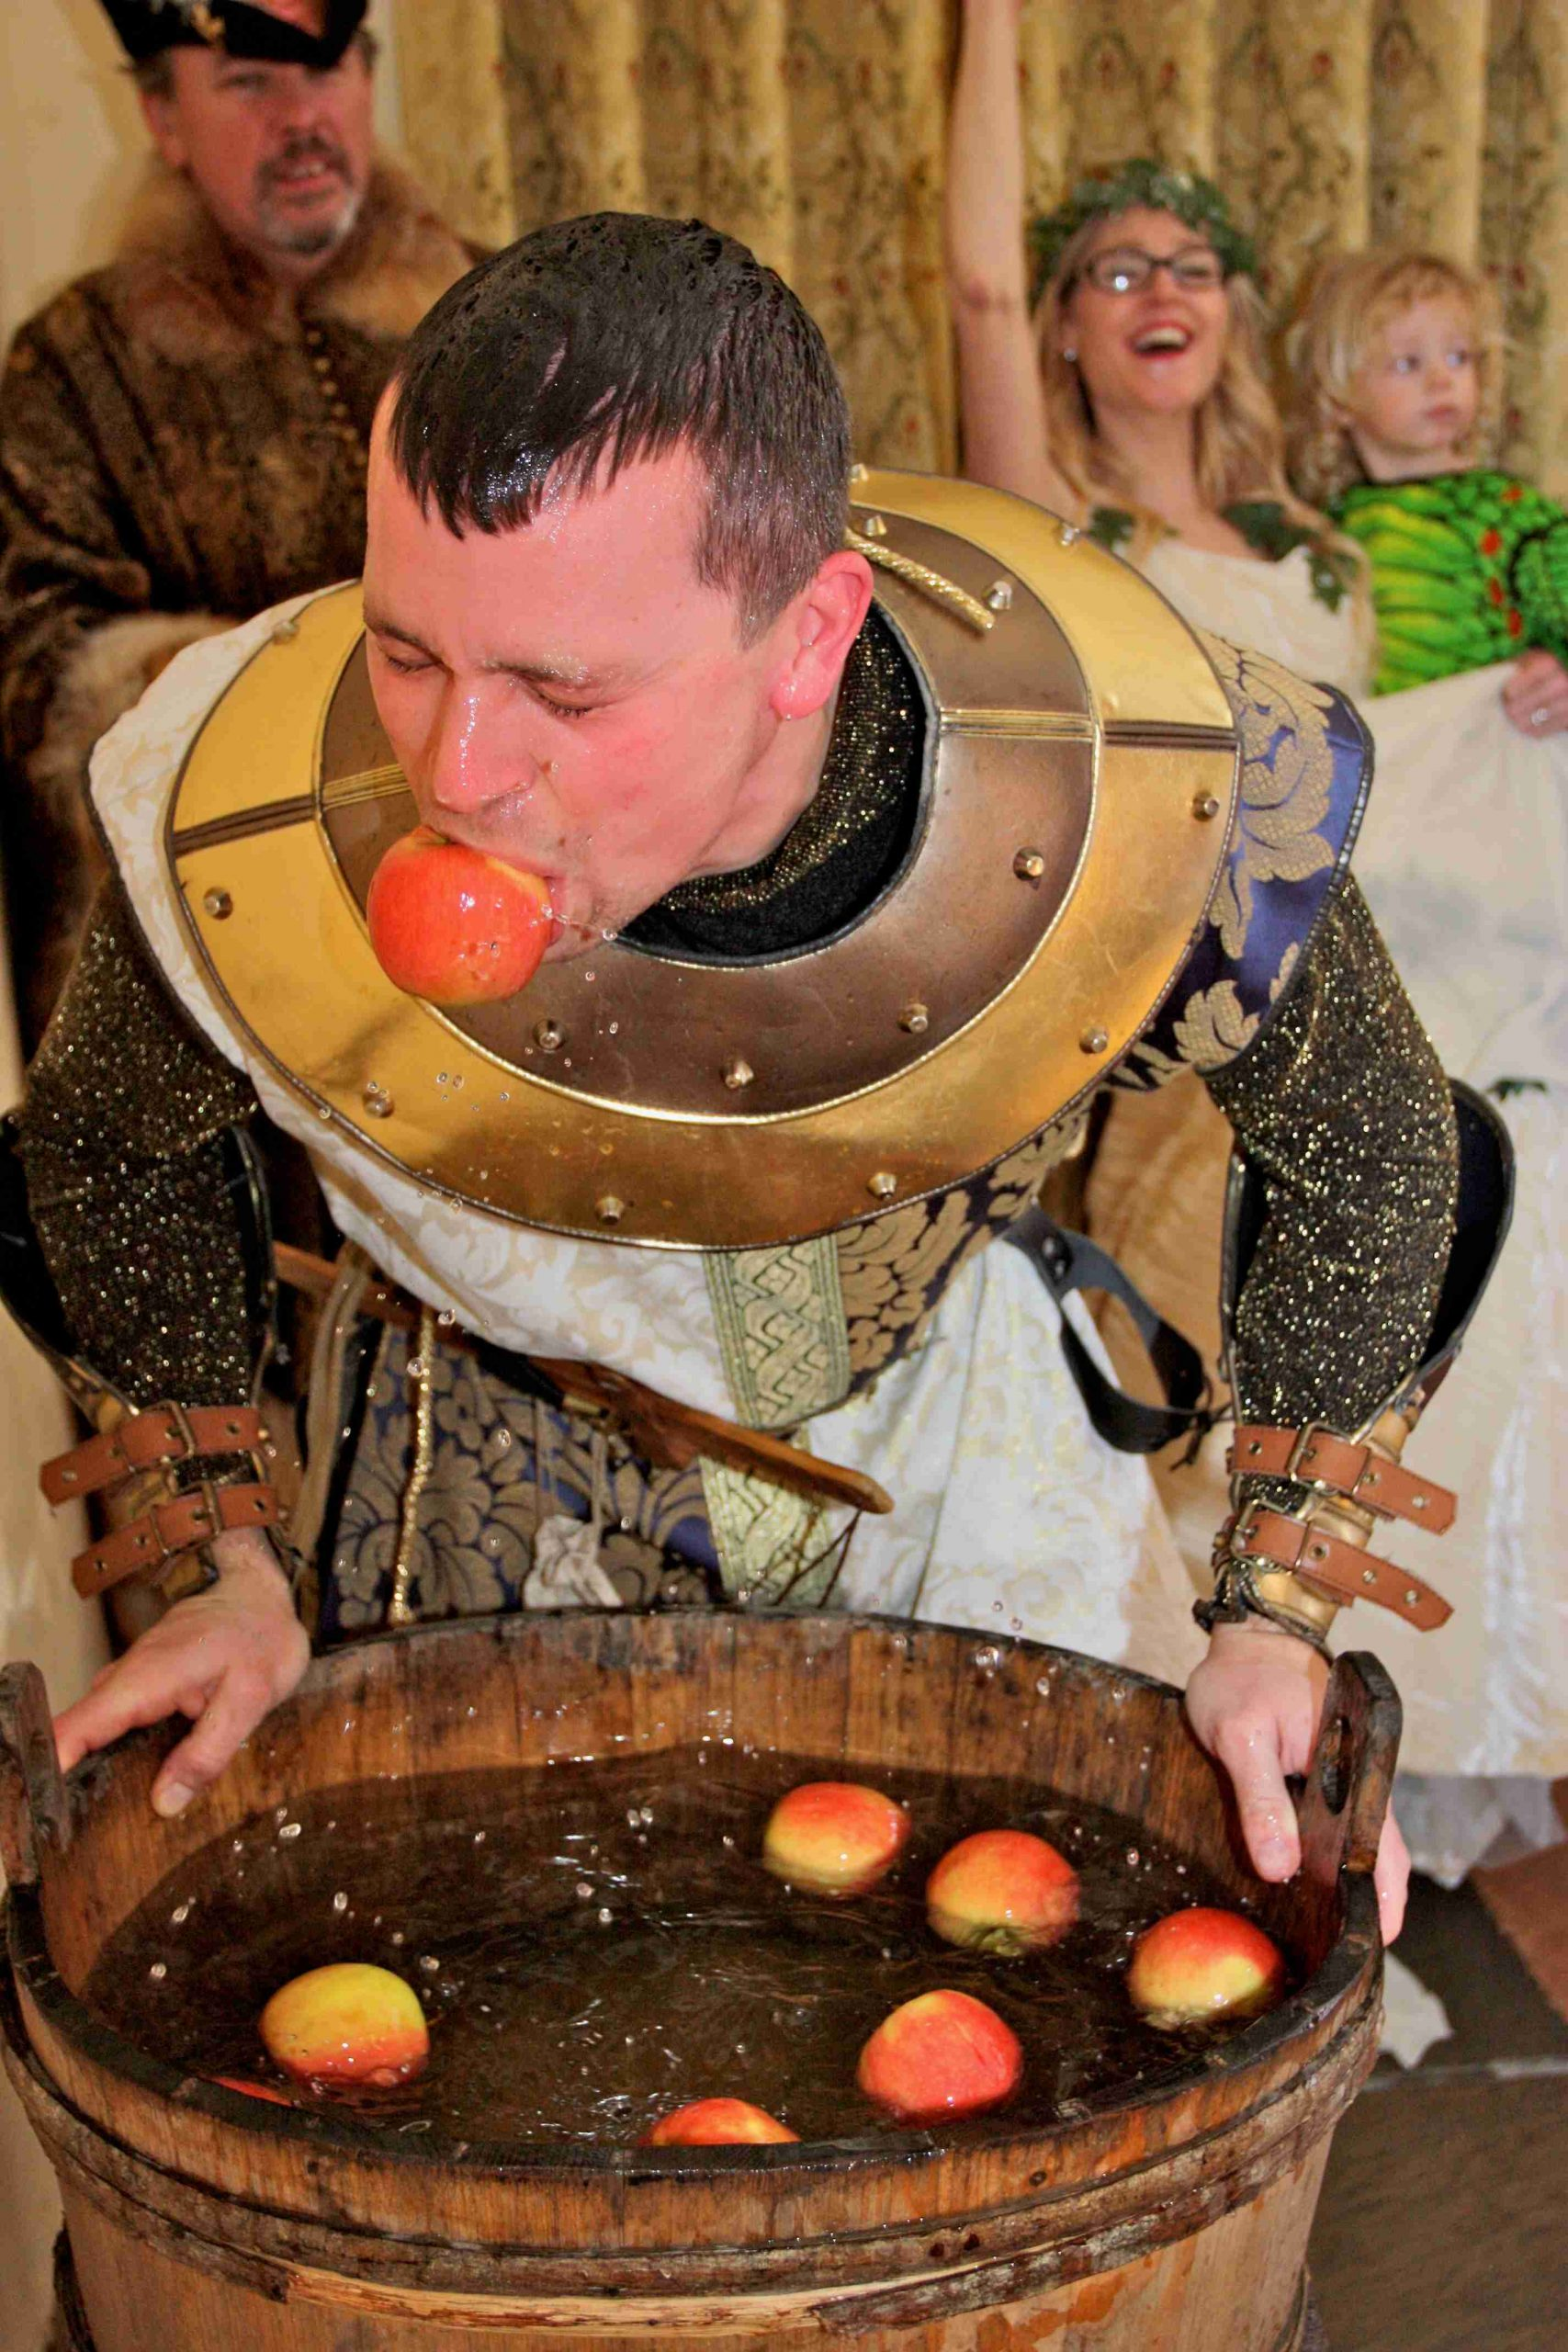 Apple bobbing, medieval costume